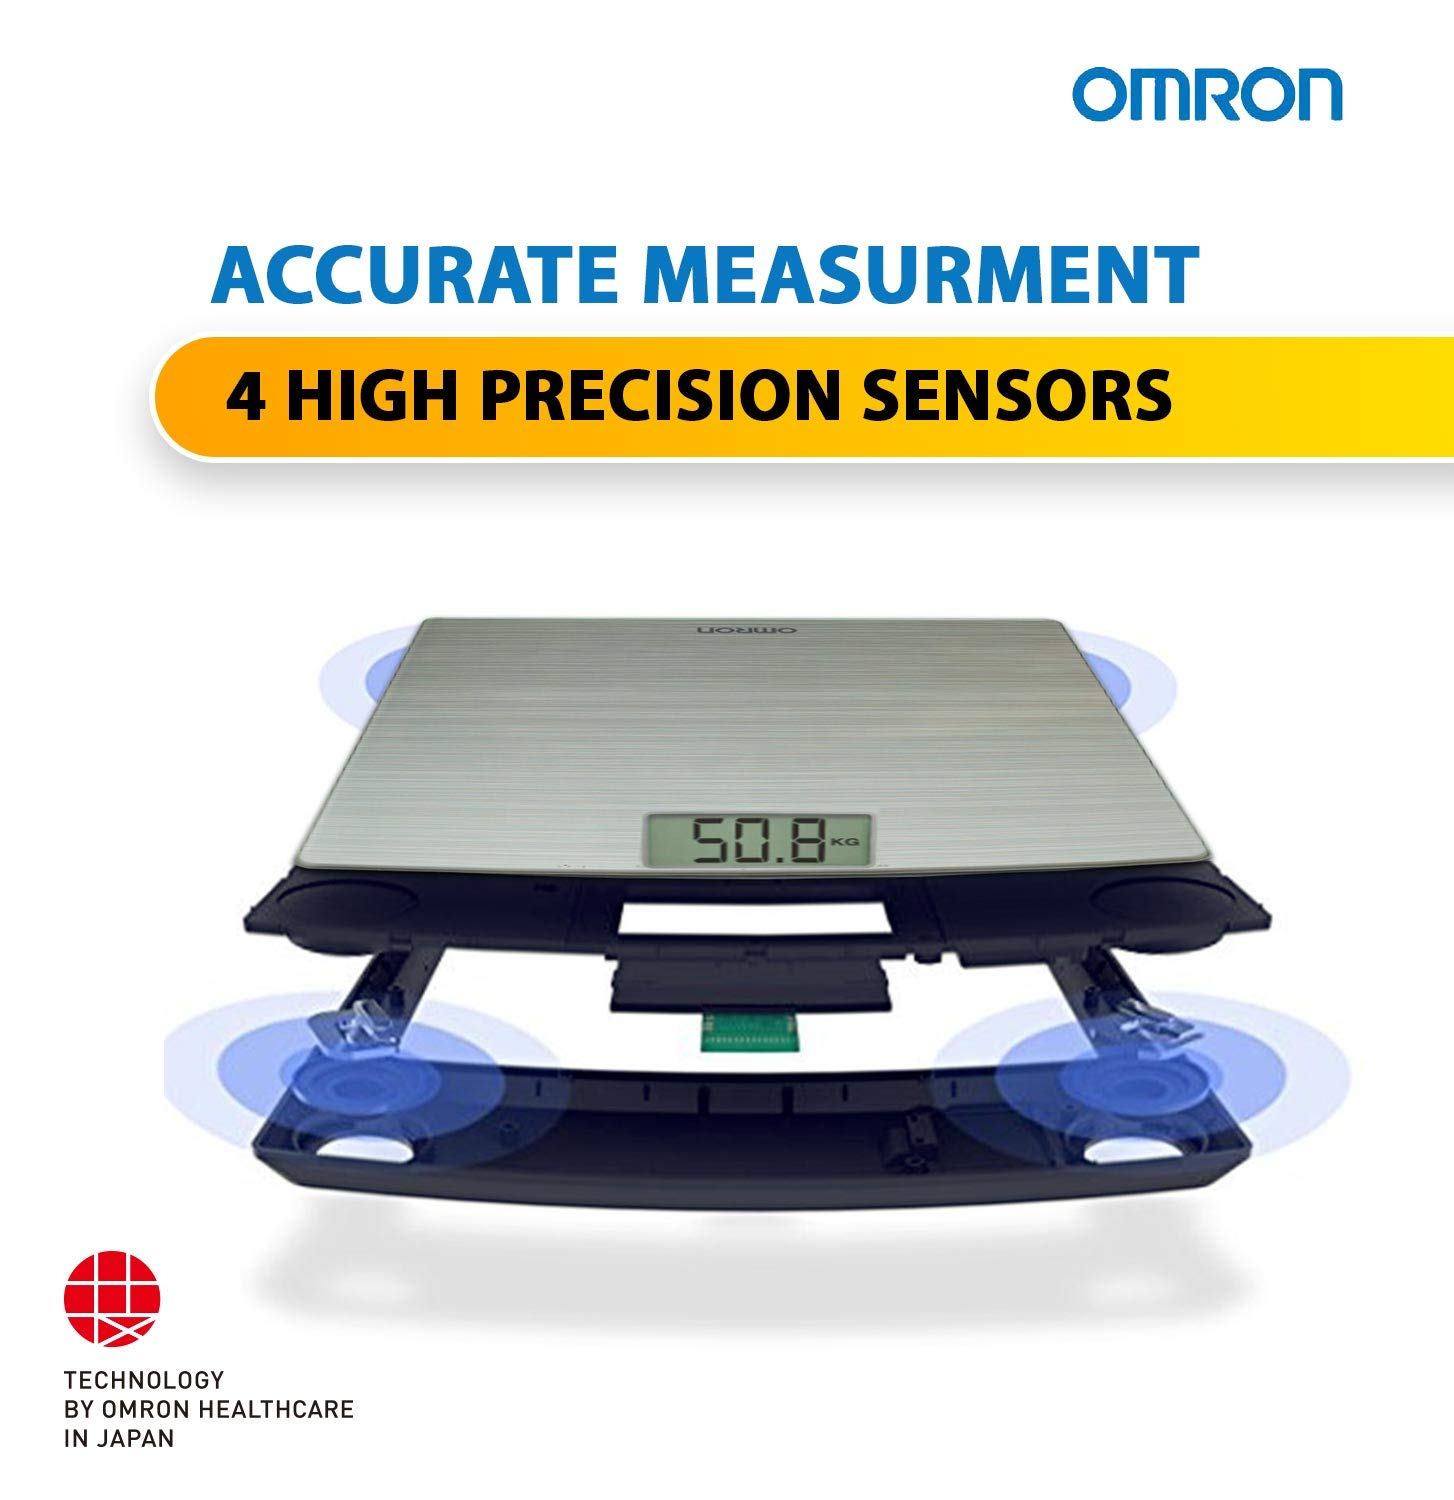 Omron HN 286 Ultra Thin Automatic Personal Digital Weight Scale With Large LCD Display and 4 Sensor Technology For Accurate Weight Measurement